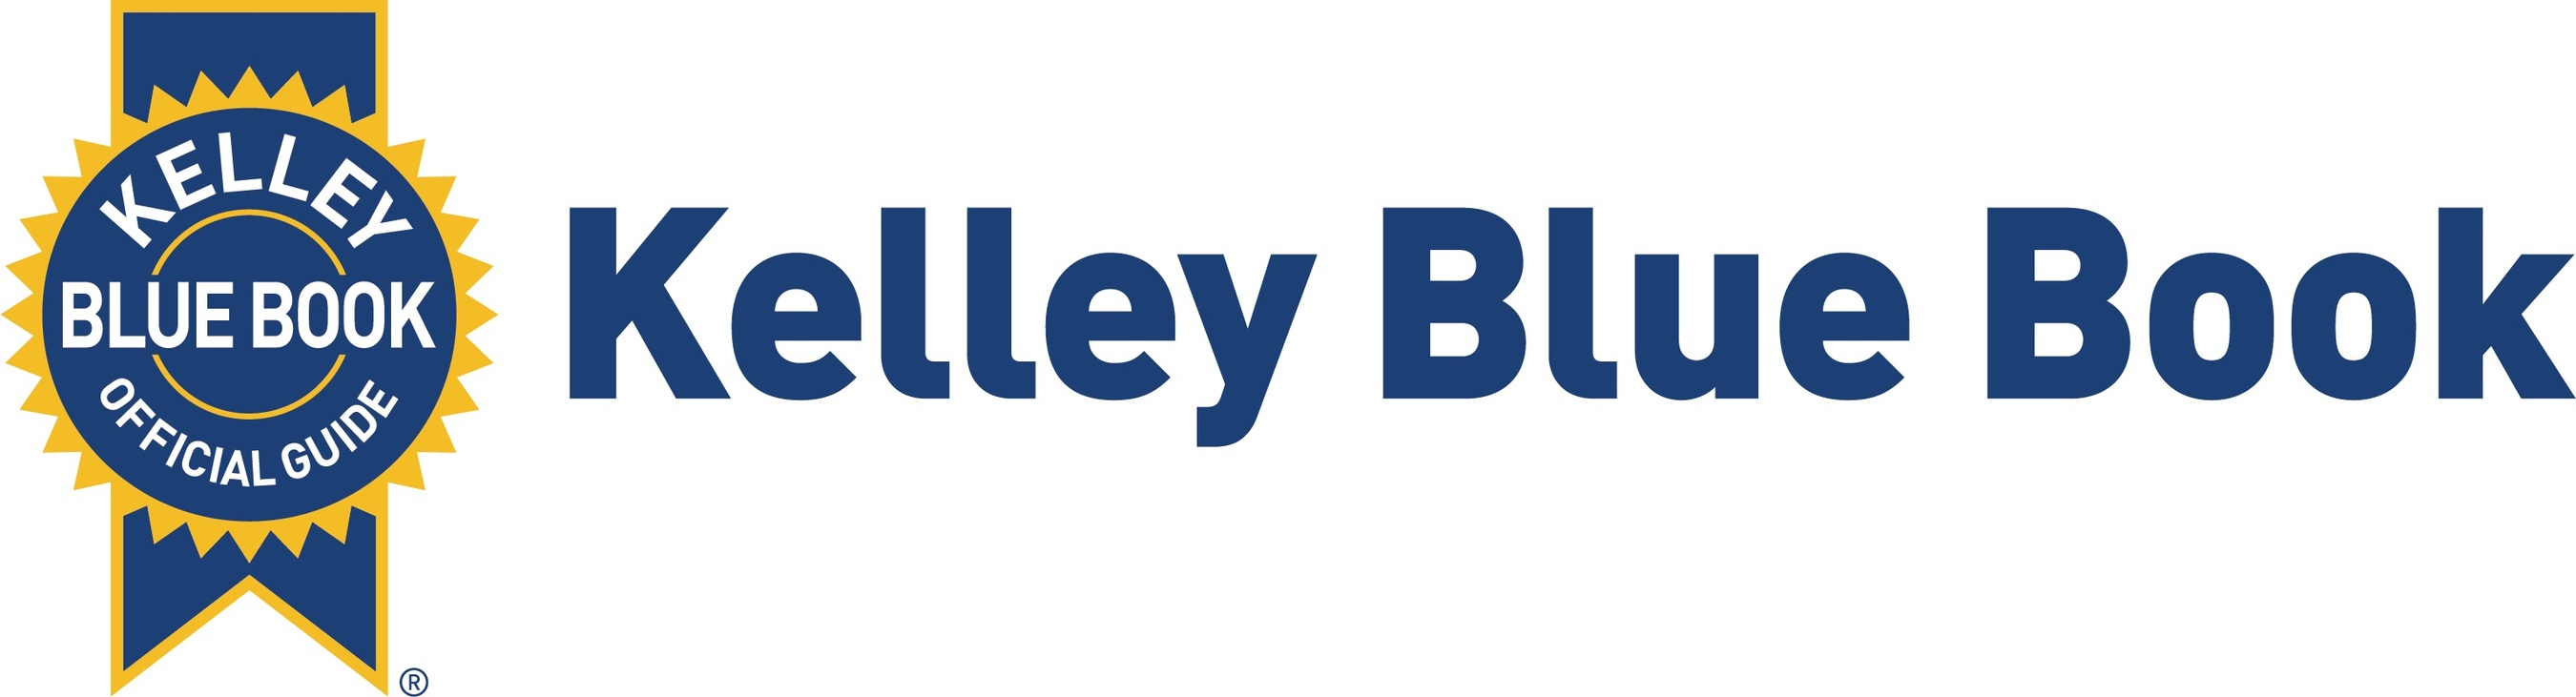 Kelley Blue Book Names 2018 Best Buy Award Winners